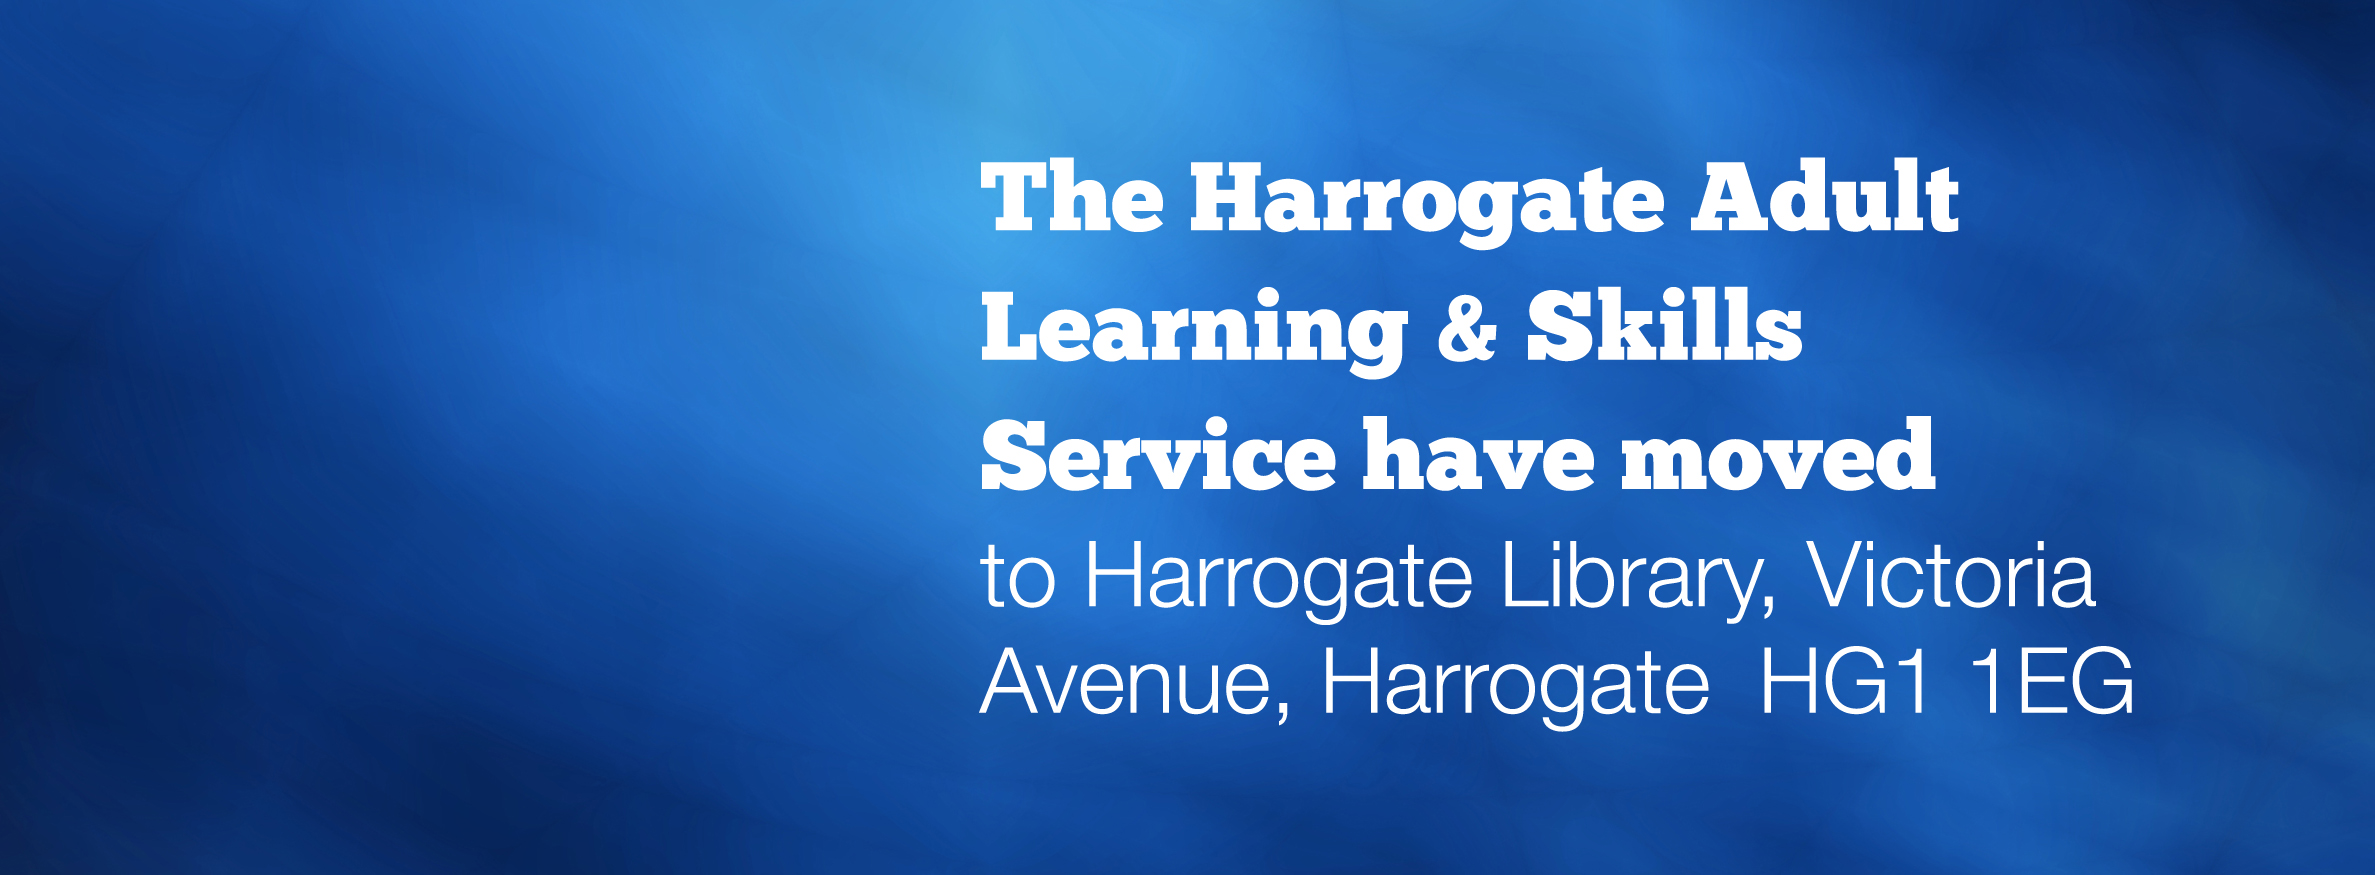 Harrogate adult learning and skills service have a new home.